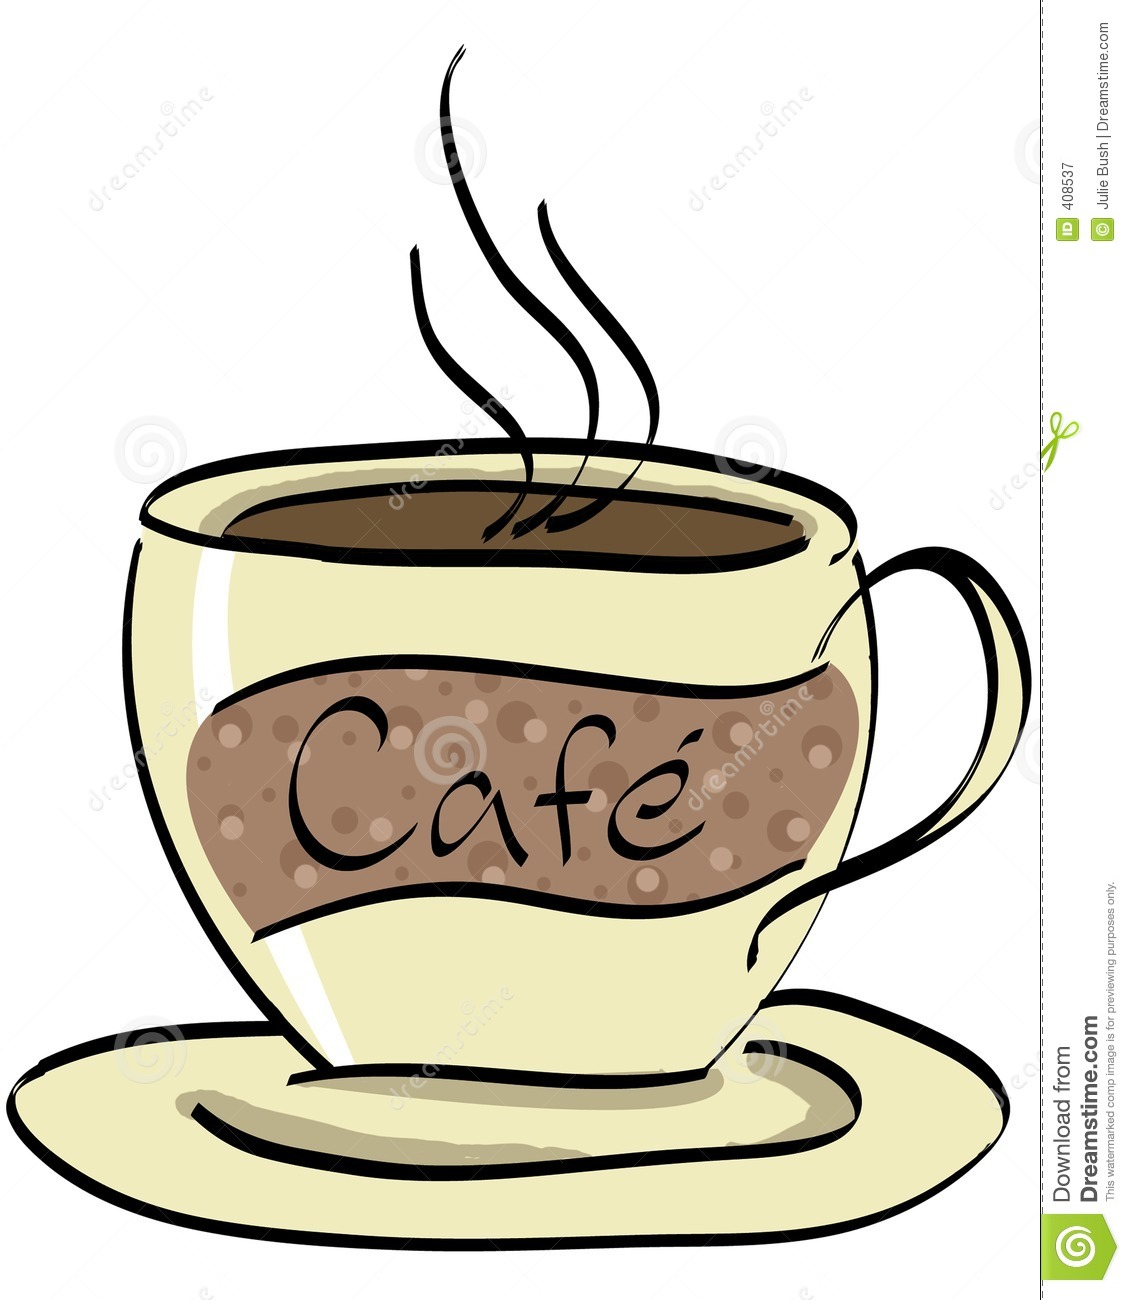 Teacup clipart poetry cafe Panda Clipart Images Cafeteria Free